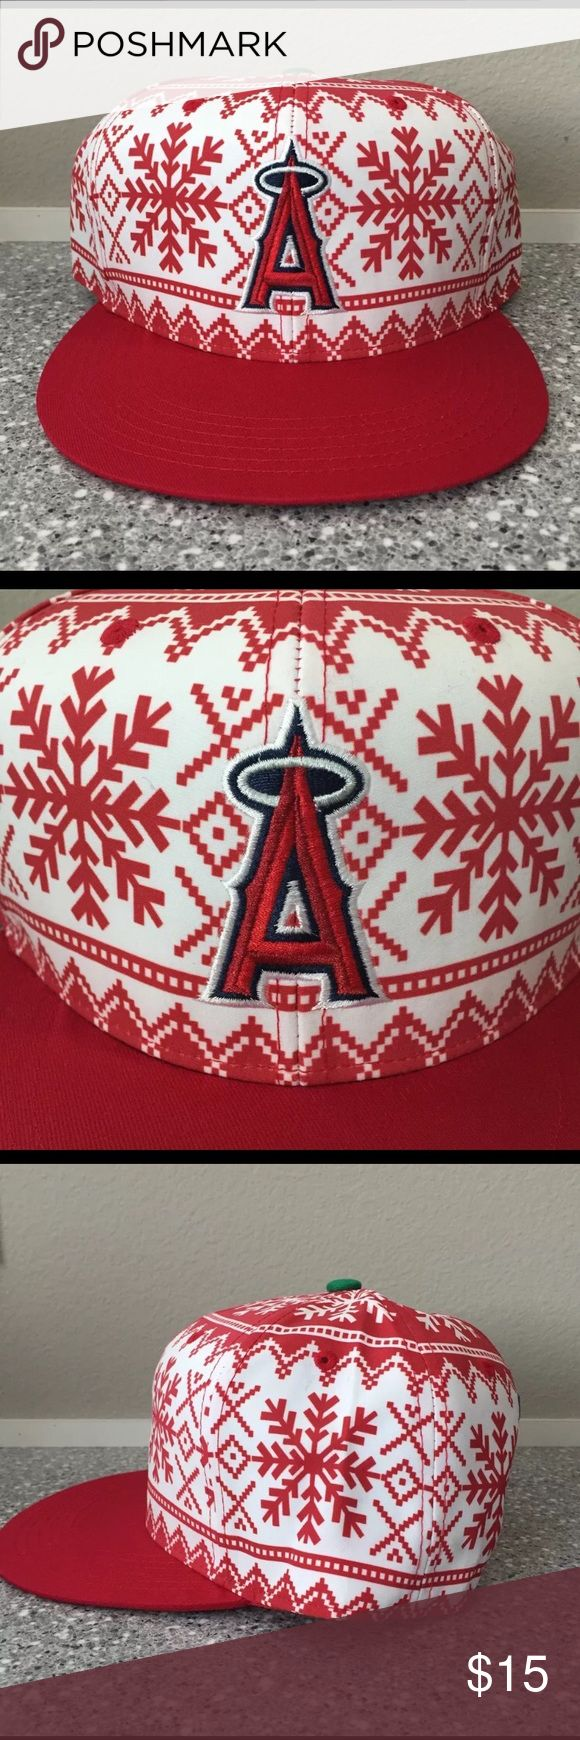 Los Angeles ANGELS Baseball hat / cap Los Angeles ANGELS baseball hat/cap. NEW, never worn. Item was a promotional giveaway. Estimated original price at $25. Red and white holiday print. Los Angeles ANGELS Baseball Accessories Hats